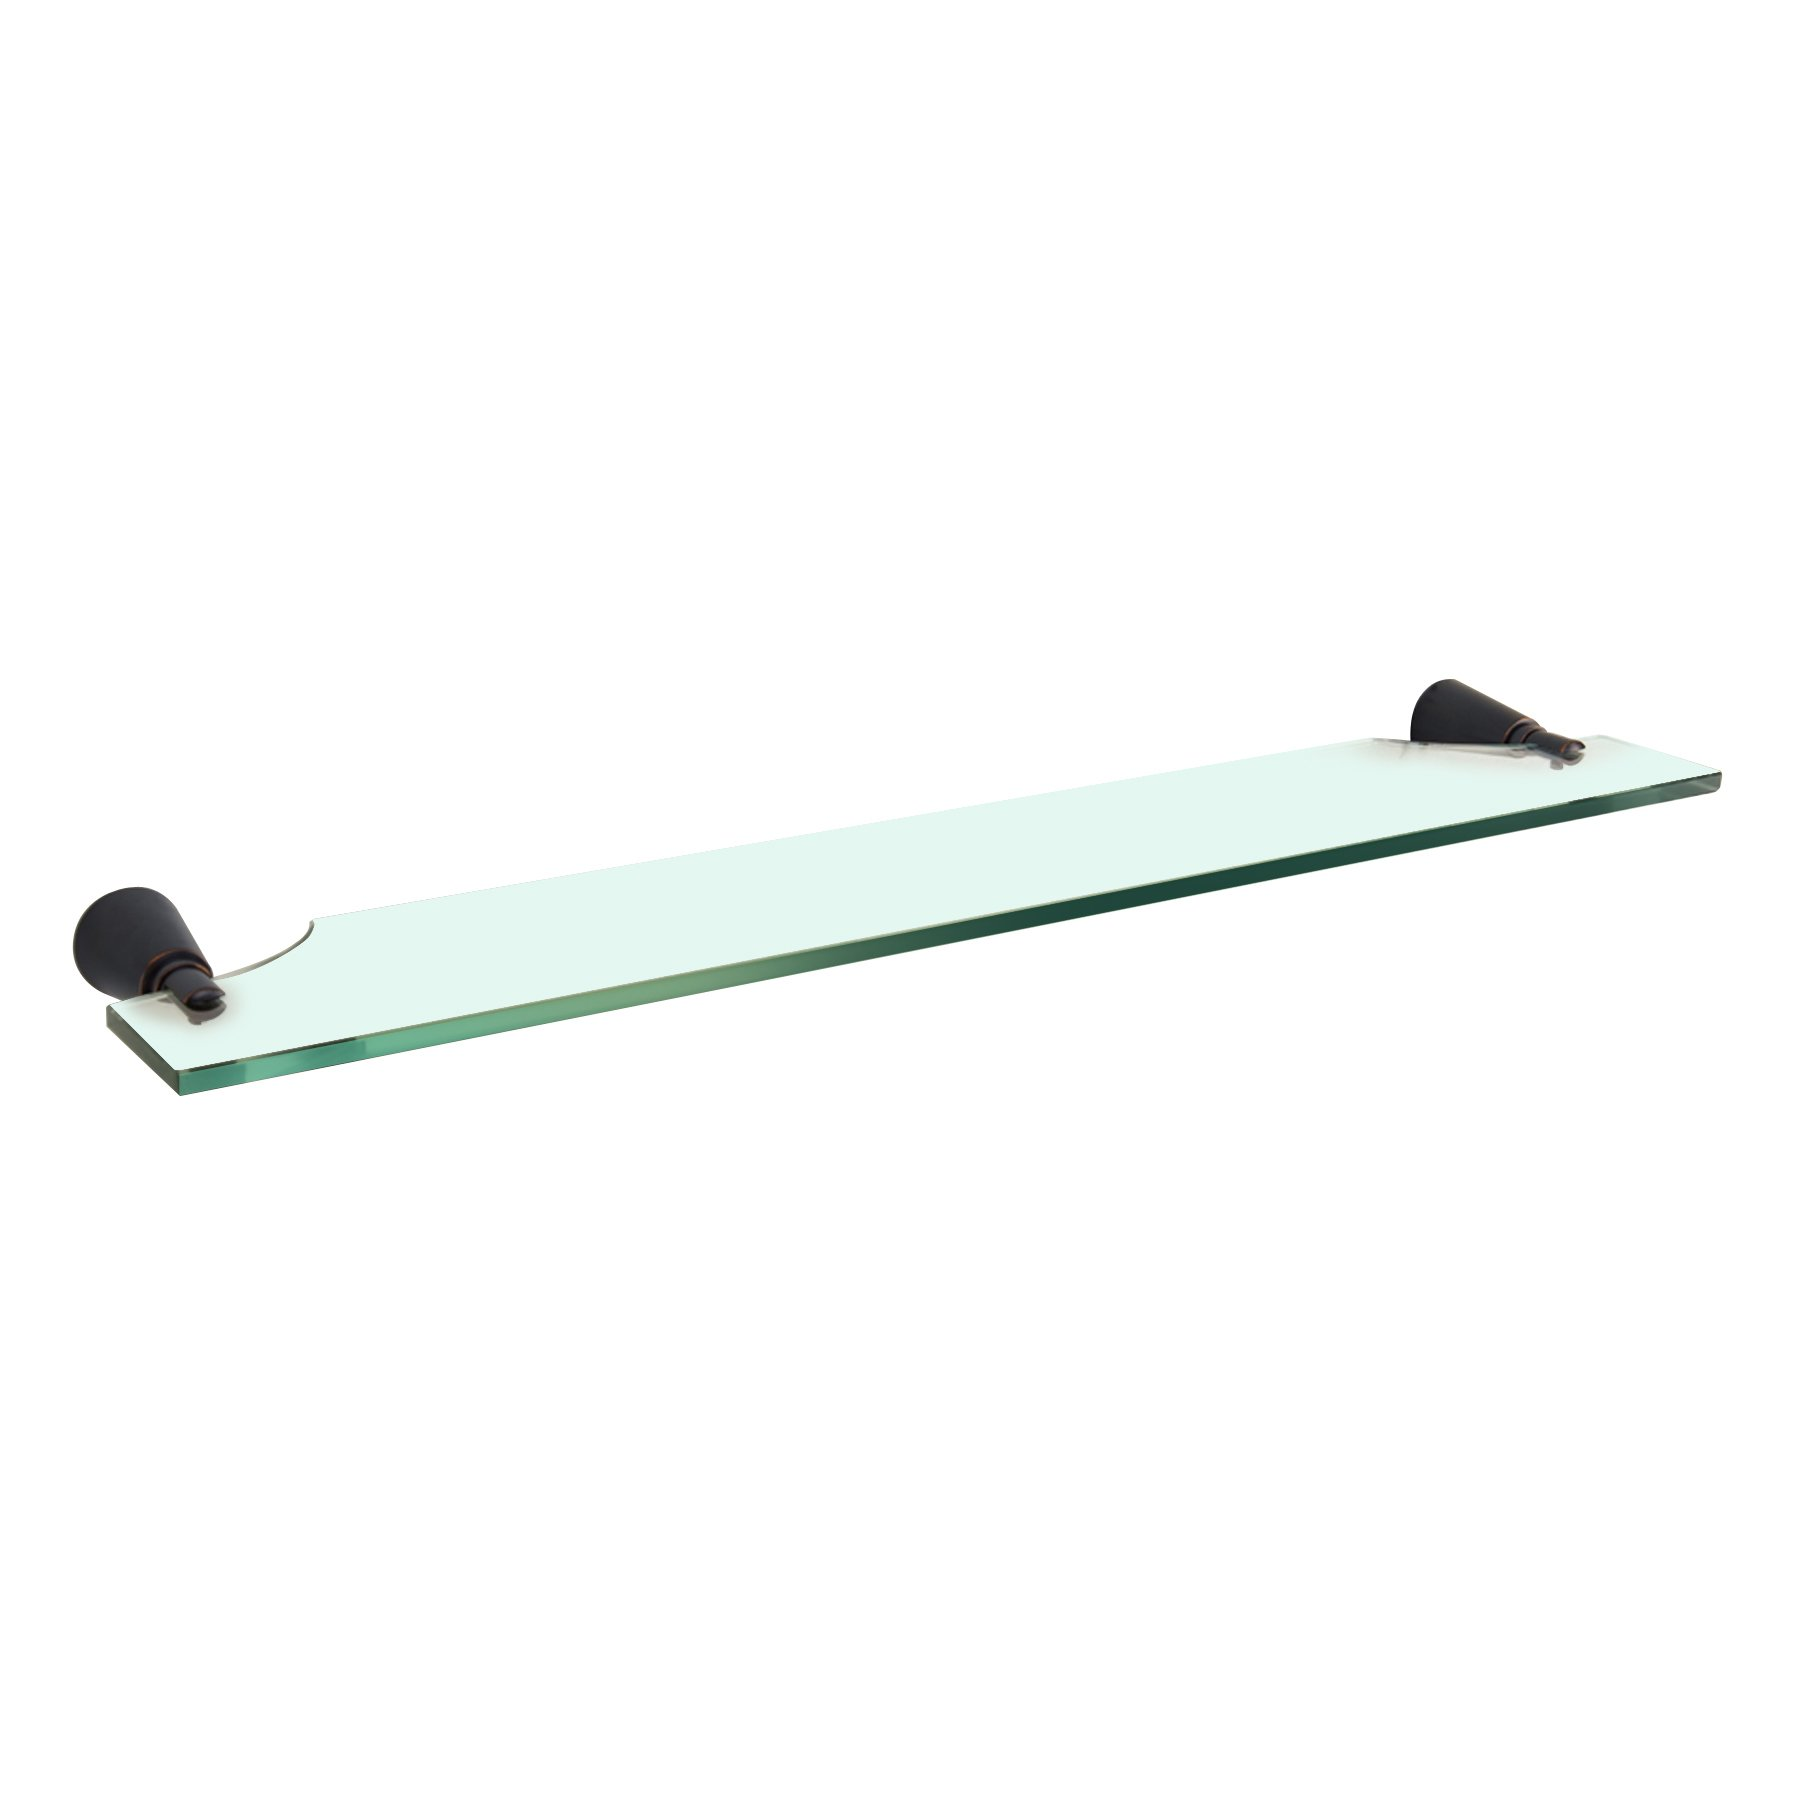 MAYKKE Soma 24'' Tempered Glass Wall Shelf | Modern Accessories and Toiletries Organizer for Bathroom Lavatory, Shower, or Kitchen, Floating Wall Mounted Storage | Oil-Rubbed Bronze DLA1100103